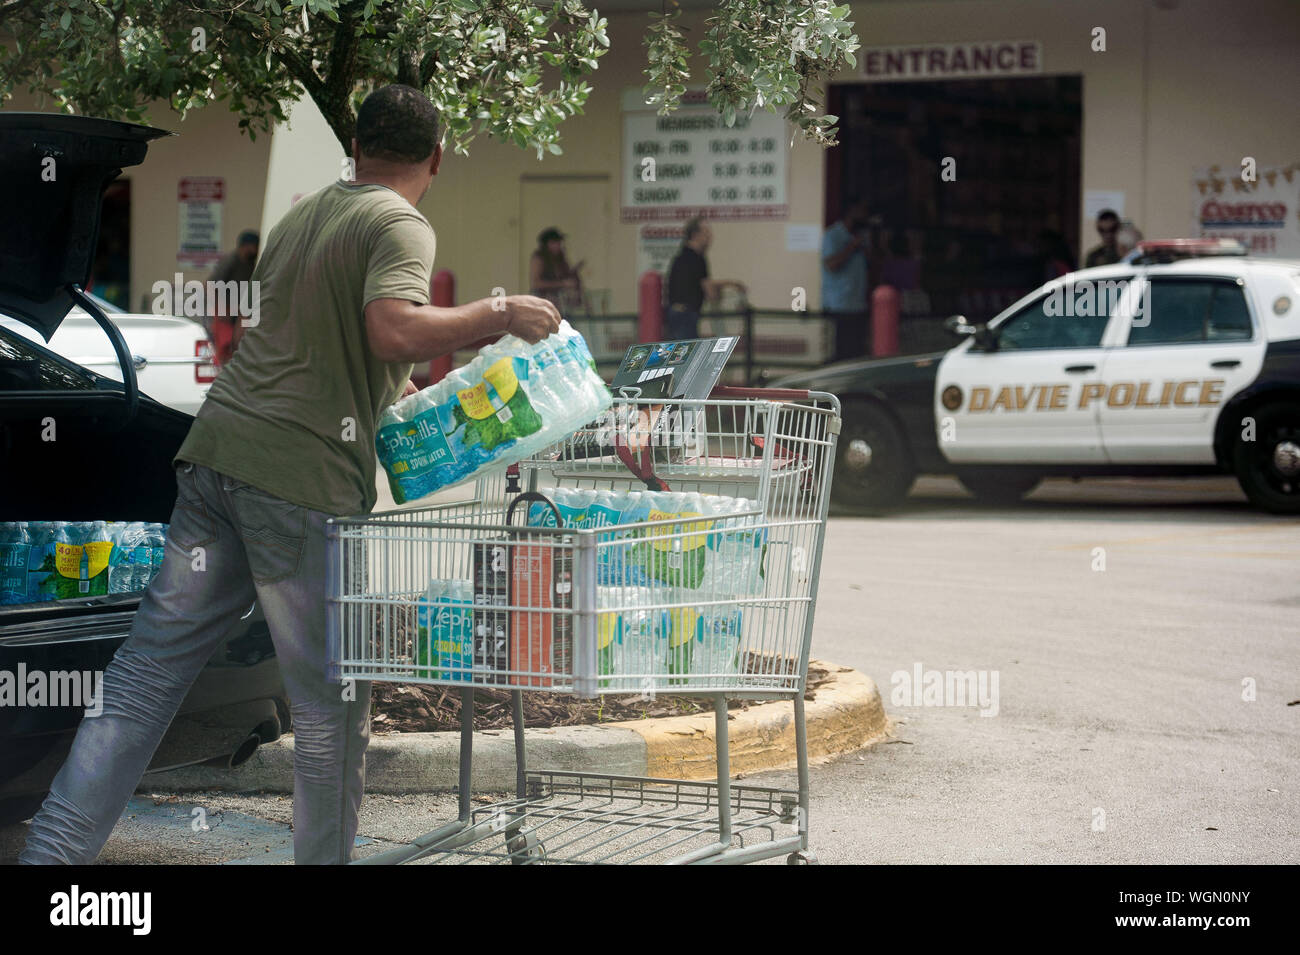 Fort Lauderdale, Florida, USA. 29th Aug, 2019. Residents of Florida stock up with groceries and water in preperation for hurricane Dorian, in Fort Lauderdale, Fla. Florida Governor, Ron Desantis, declared a state of emergency for 26 counties in Florida, as Hurricane is forecast to hit Florida as a major category 3 hurricane Credit: Orit Ben-Ezzer/ZUMA Wire/Alamy Live News Stock Photo